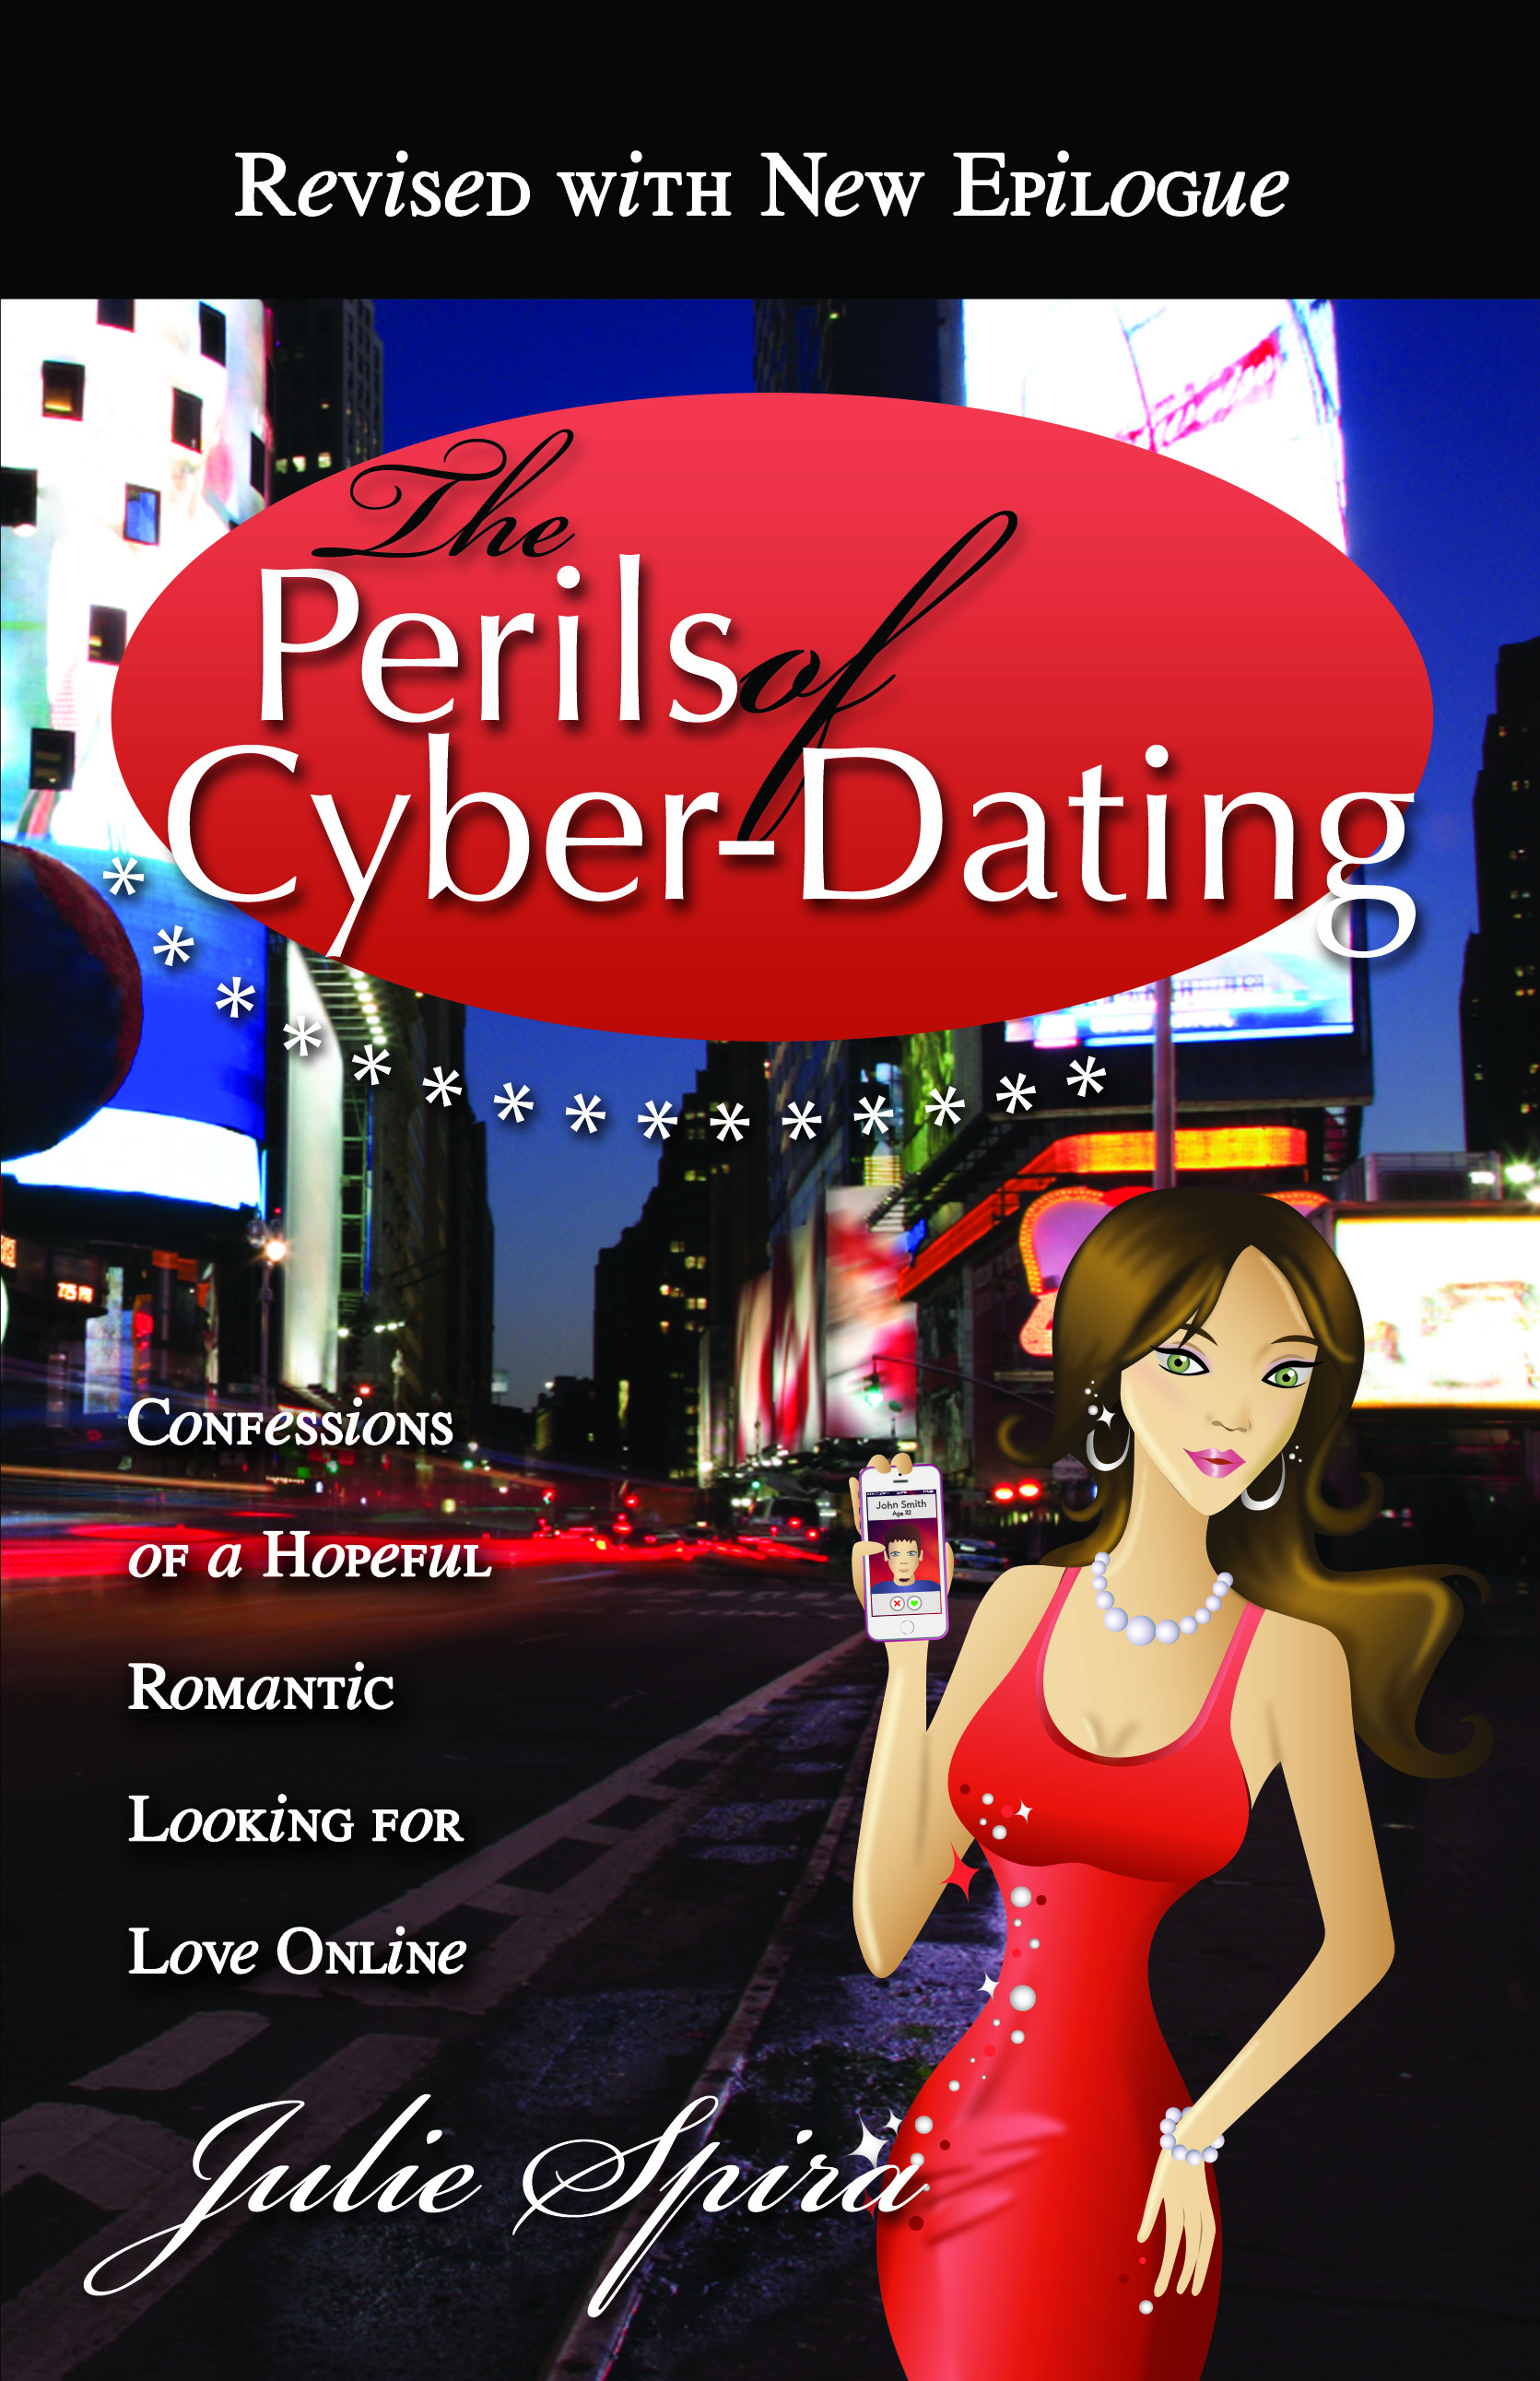 Perils of Cyber-Dating